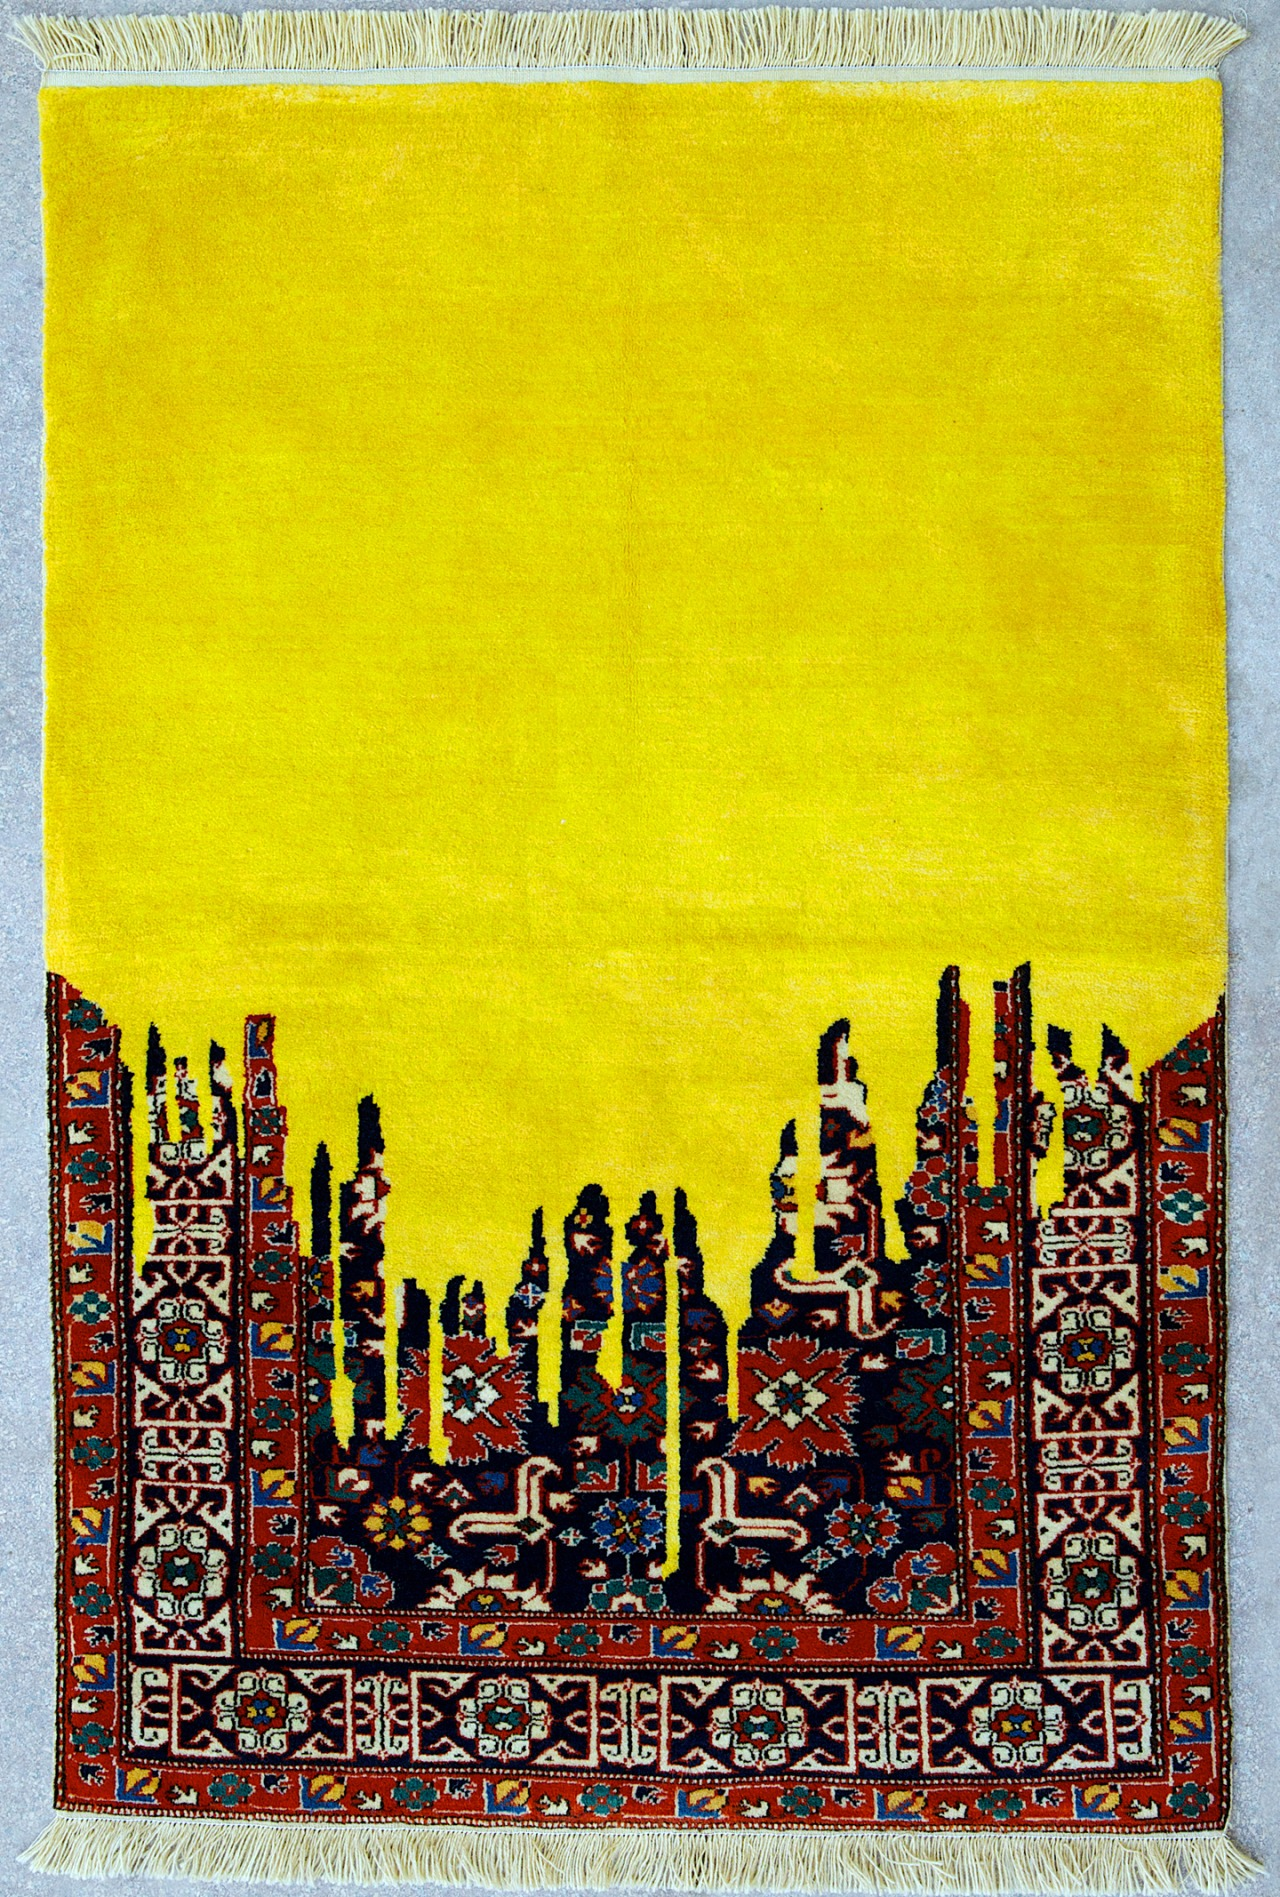 Flood of Yellow Weight - Handmade Woolen Carpet by Faig Ahmed